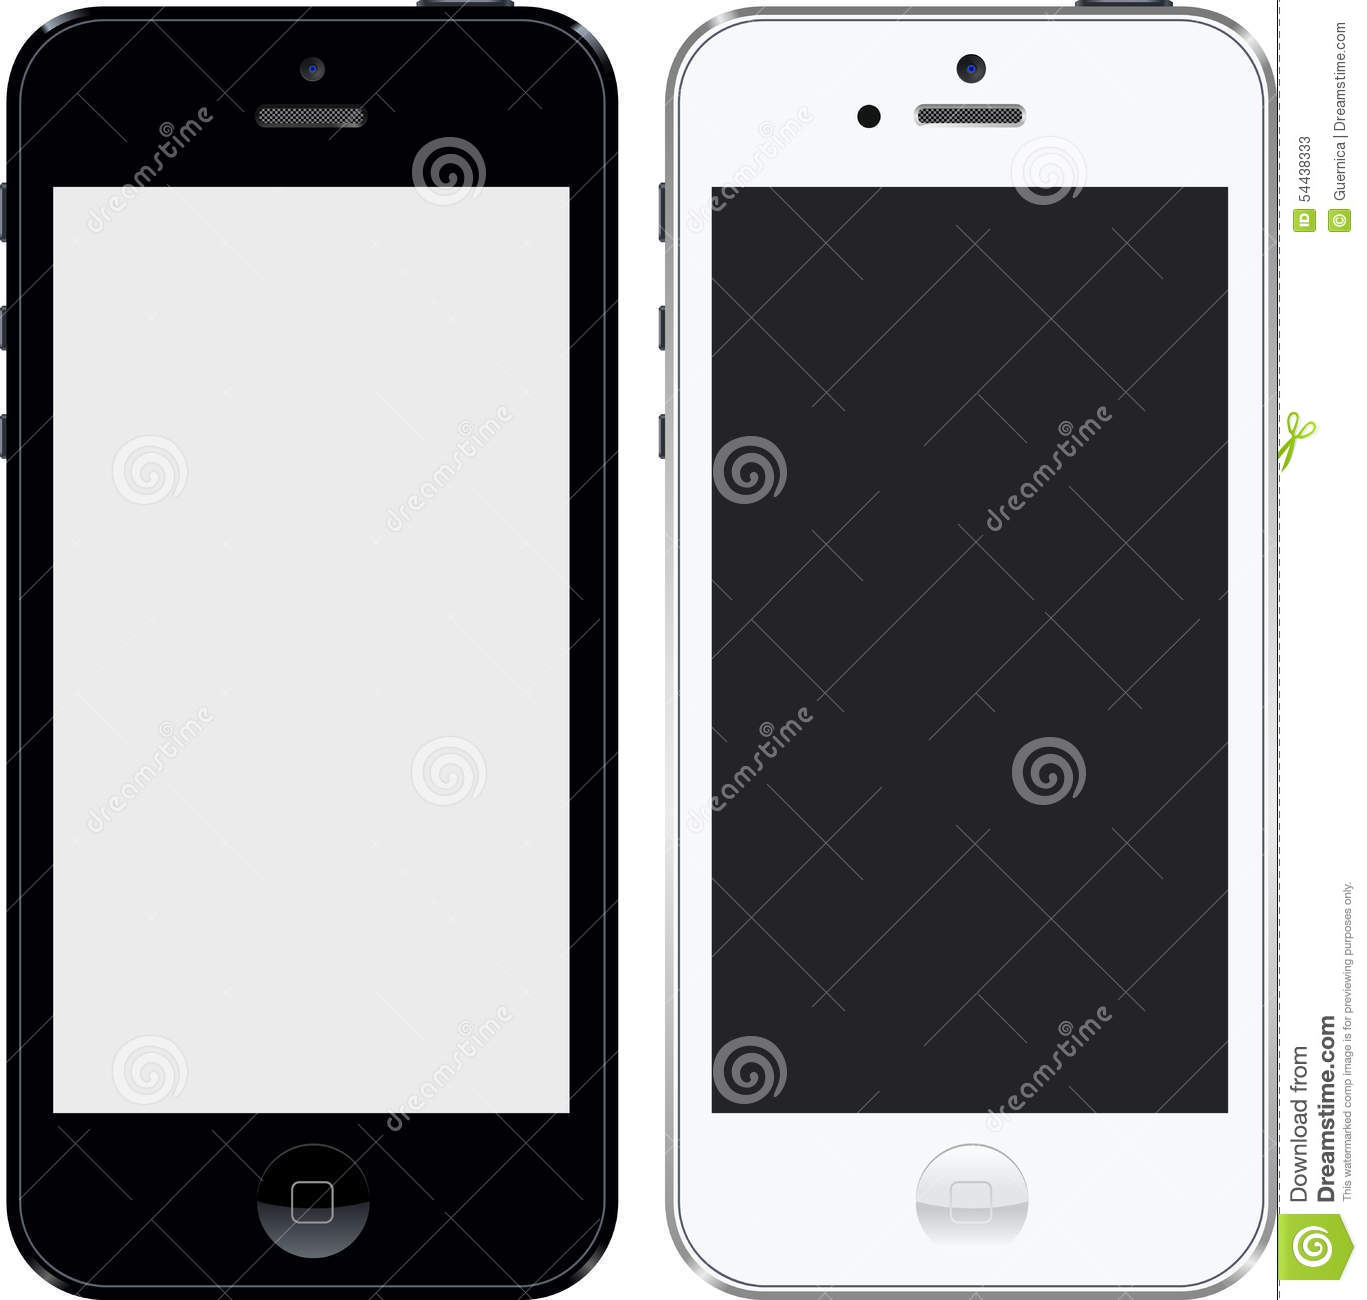 Iphone 5 clipart size png transparent download Clipart size for iphone 5s - ClipartFox png transparent download